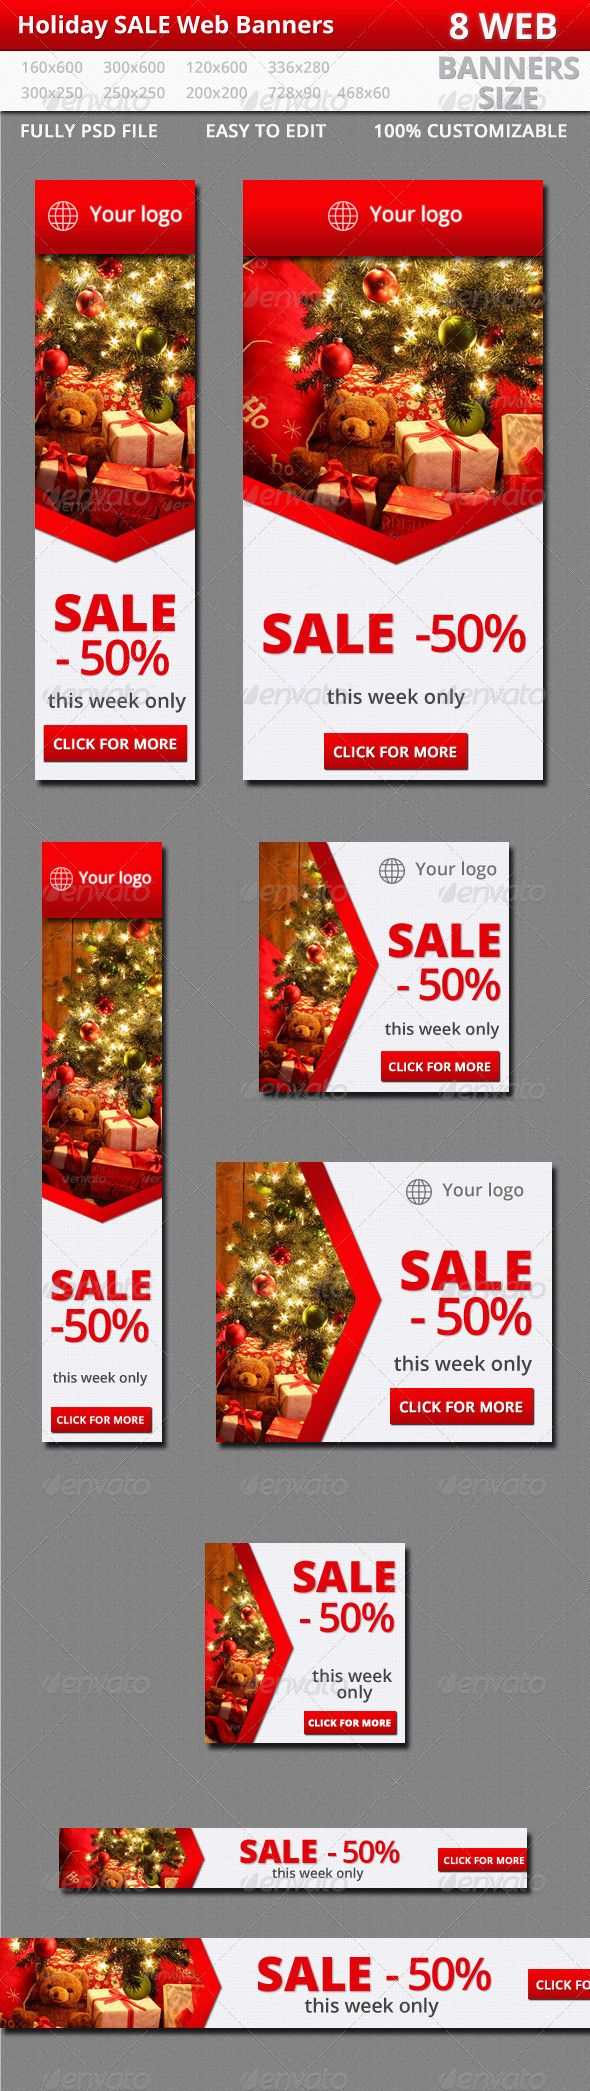 Christmas Sale Web Banners Template PSD | Buy and Download: http://graphicriver.net/item/sale-web-banners/6363730?WT.ac=category_thumb&WT.z_author=veastudio&ref=ksioks